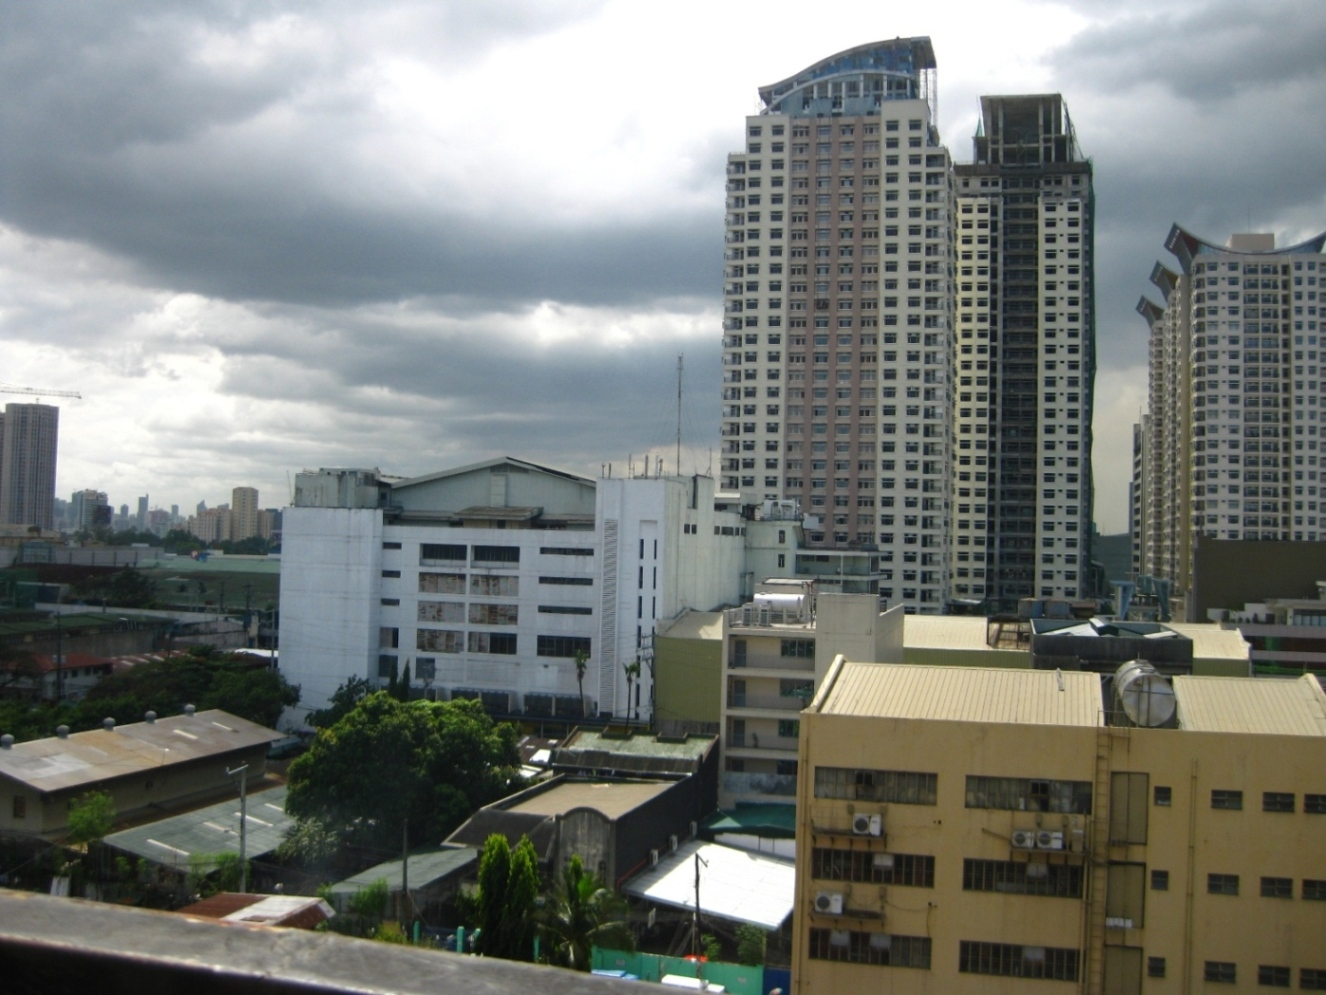 View from Roof Deck to Araneta Center - http://www.renttoown.ph